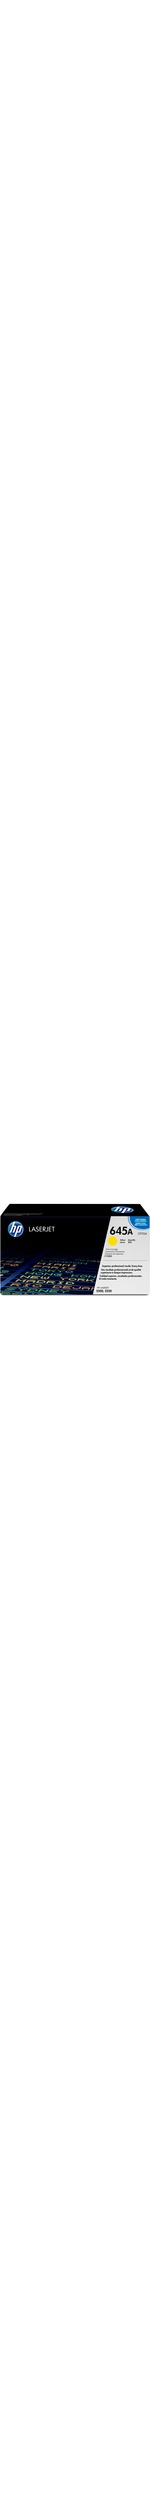 HP 645A Toner Cartridge - Yellow - Laser - 12000 Page - 1 Pack